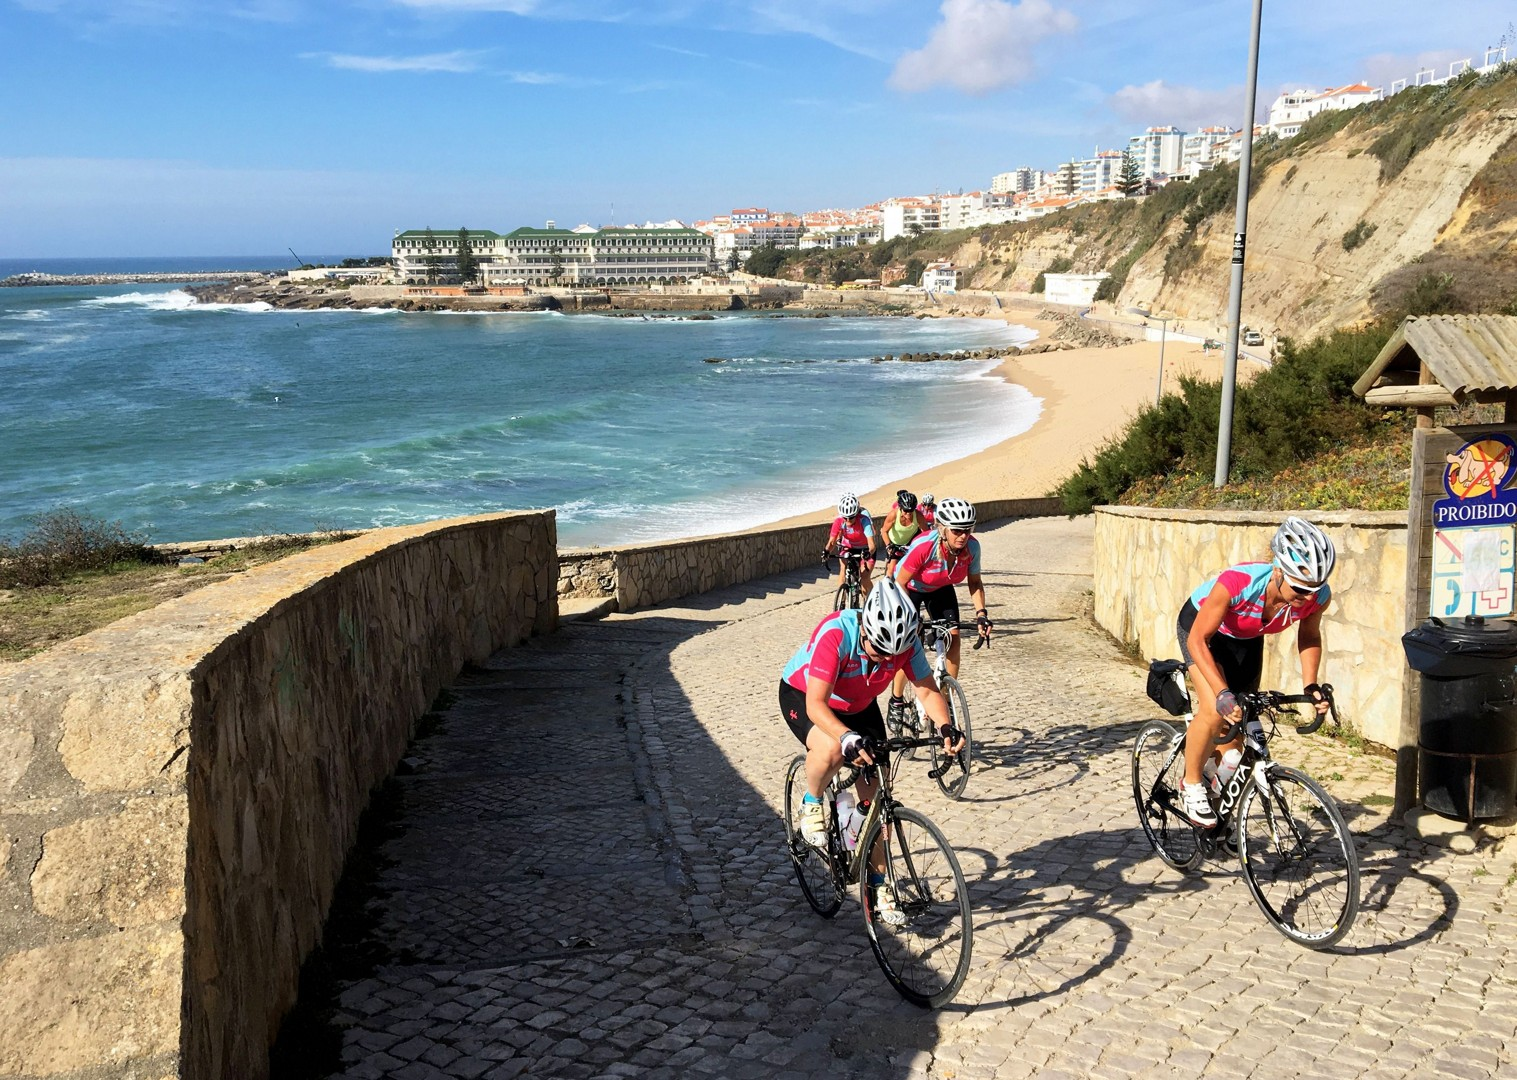 coastal-views-portugal-atlantic-escape.jpg - Portugal - Atlantic Escape - Guided Road Cycling Holiday - Road Cycling